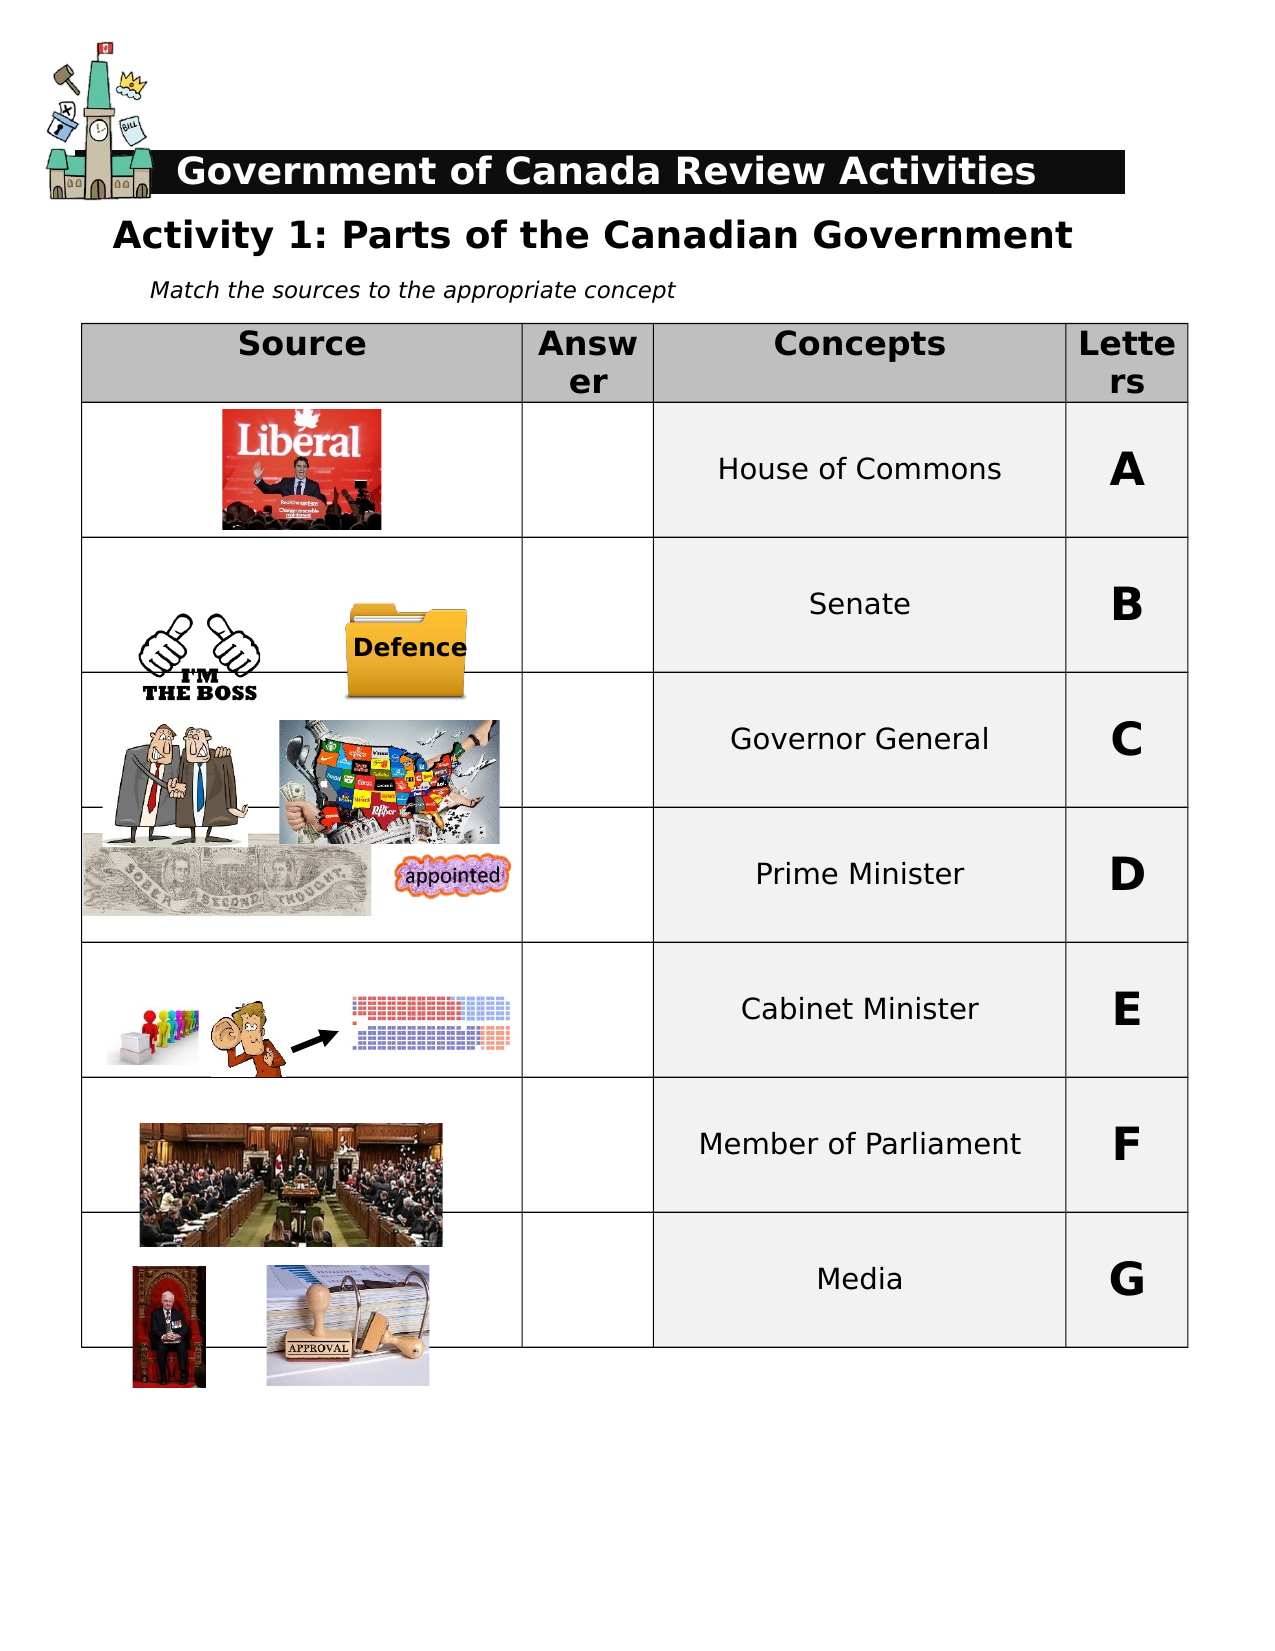 Government of Canada Review Activities  Resource Preview